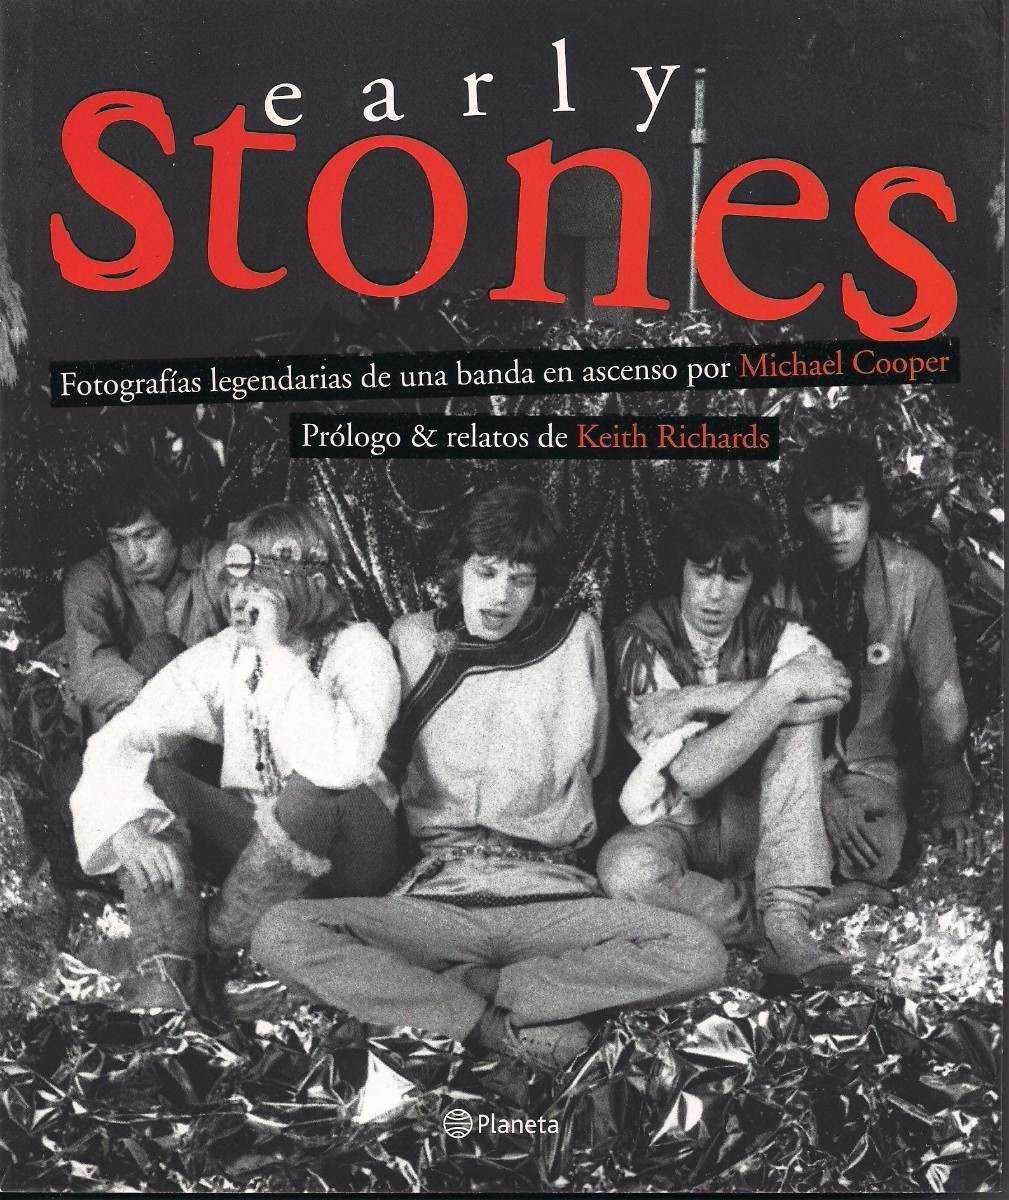 Libro De Keith Richards Libro Early Stones Michael Cooper Keith Richards